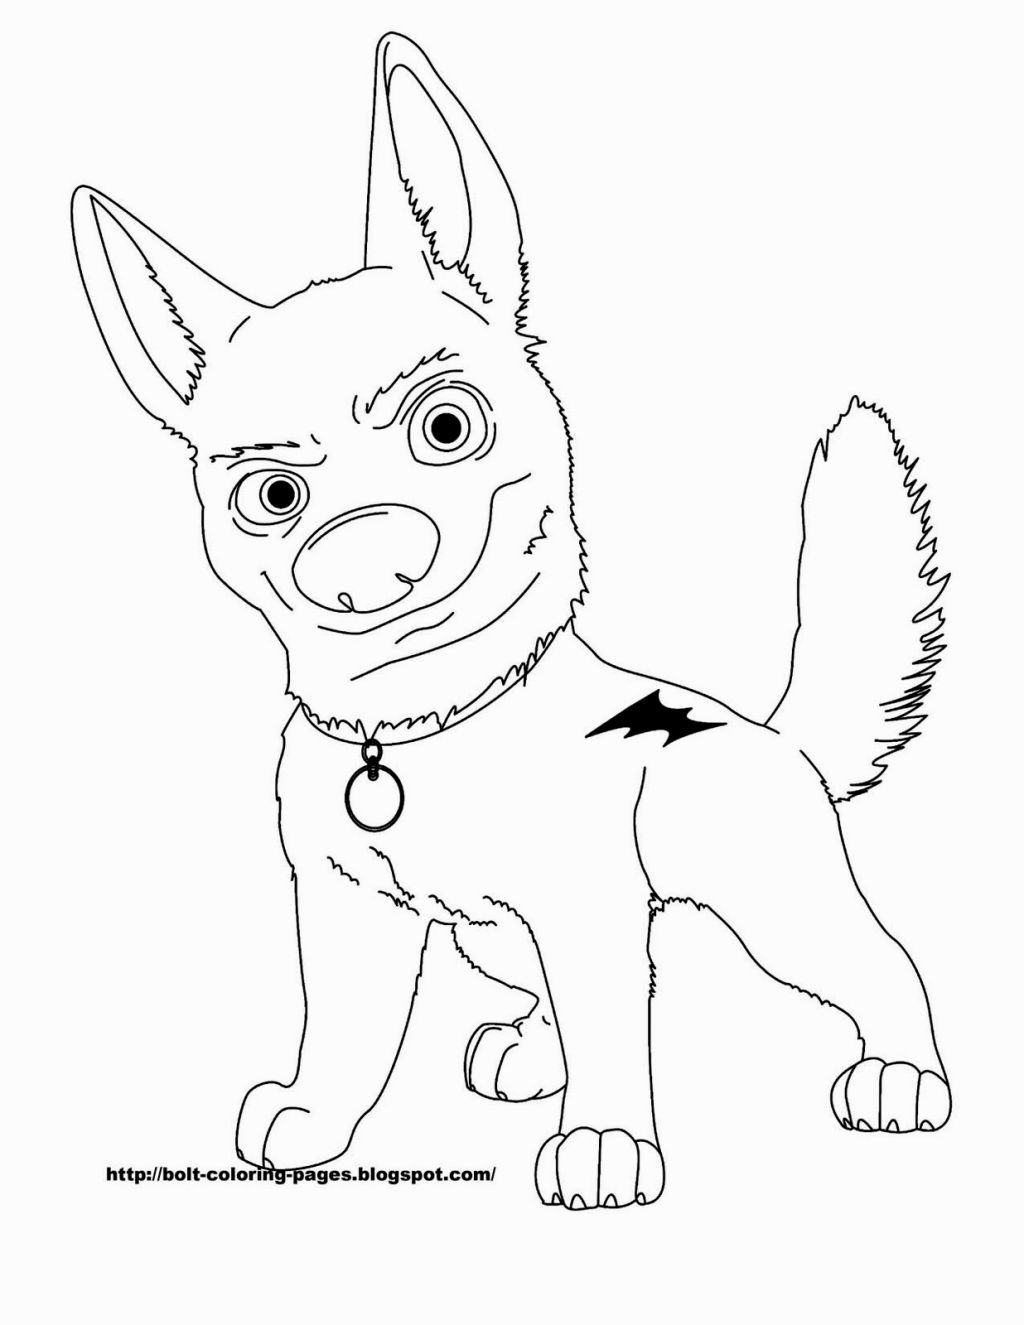 Bolt Coloring Page Coloring Pages Disney Coloring Pages Baby